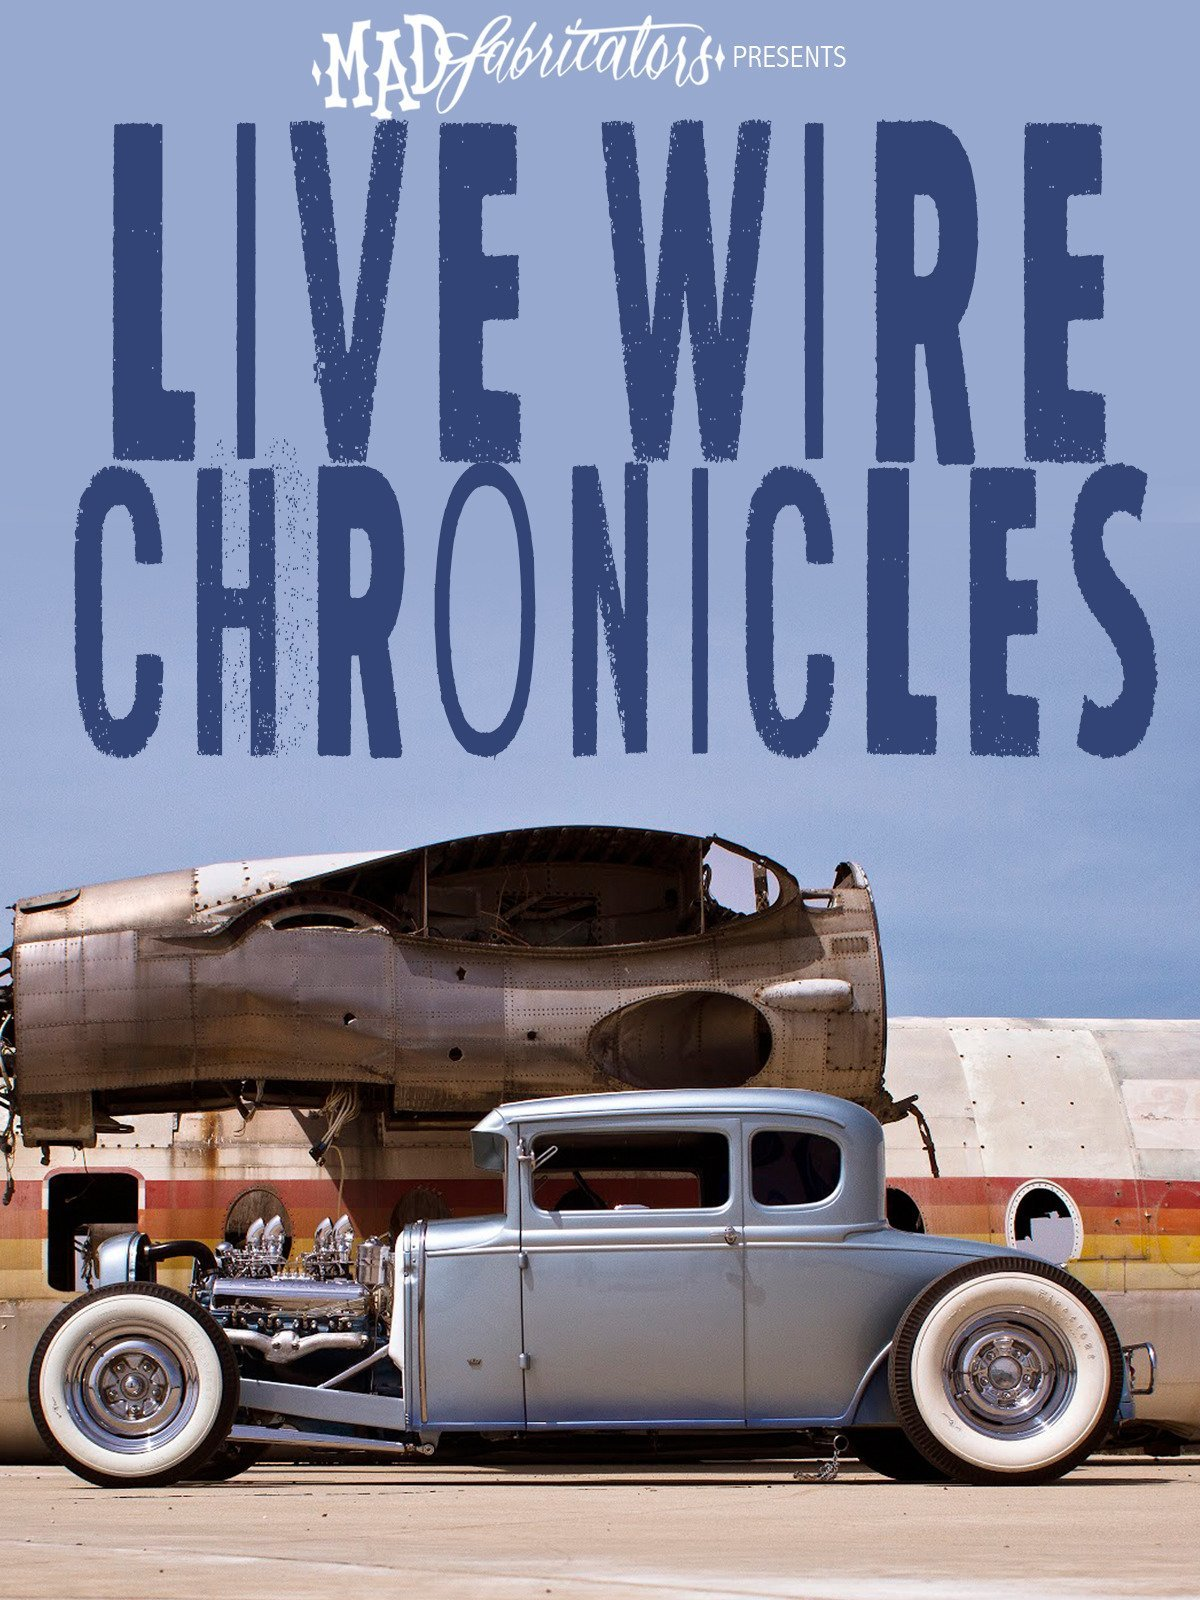 Mad Fabricators Presents: Live Wire Chronicles